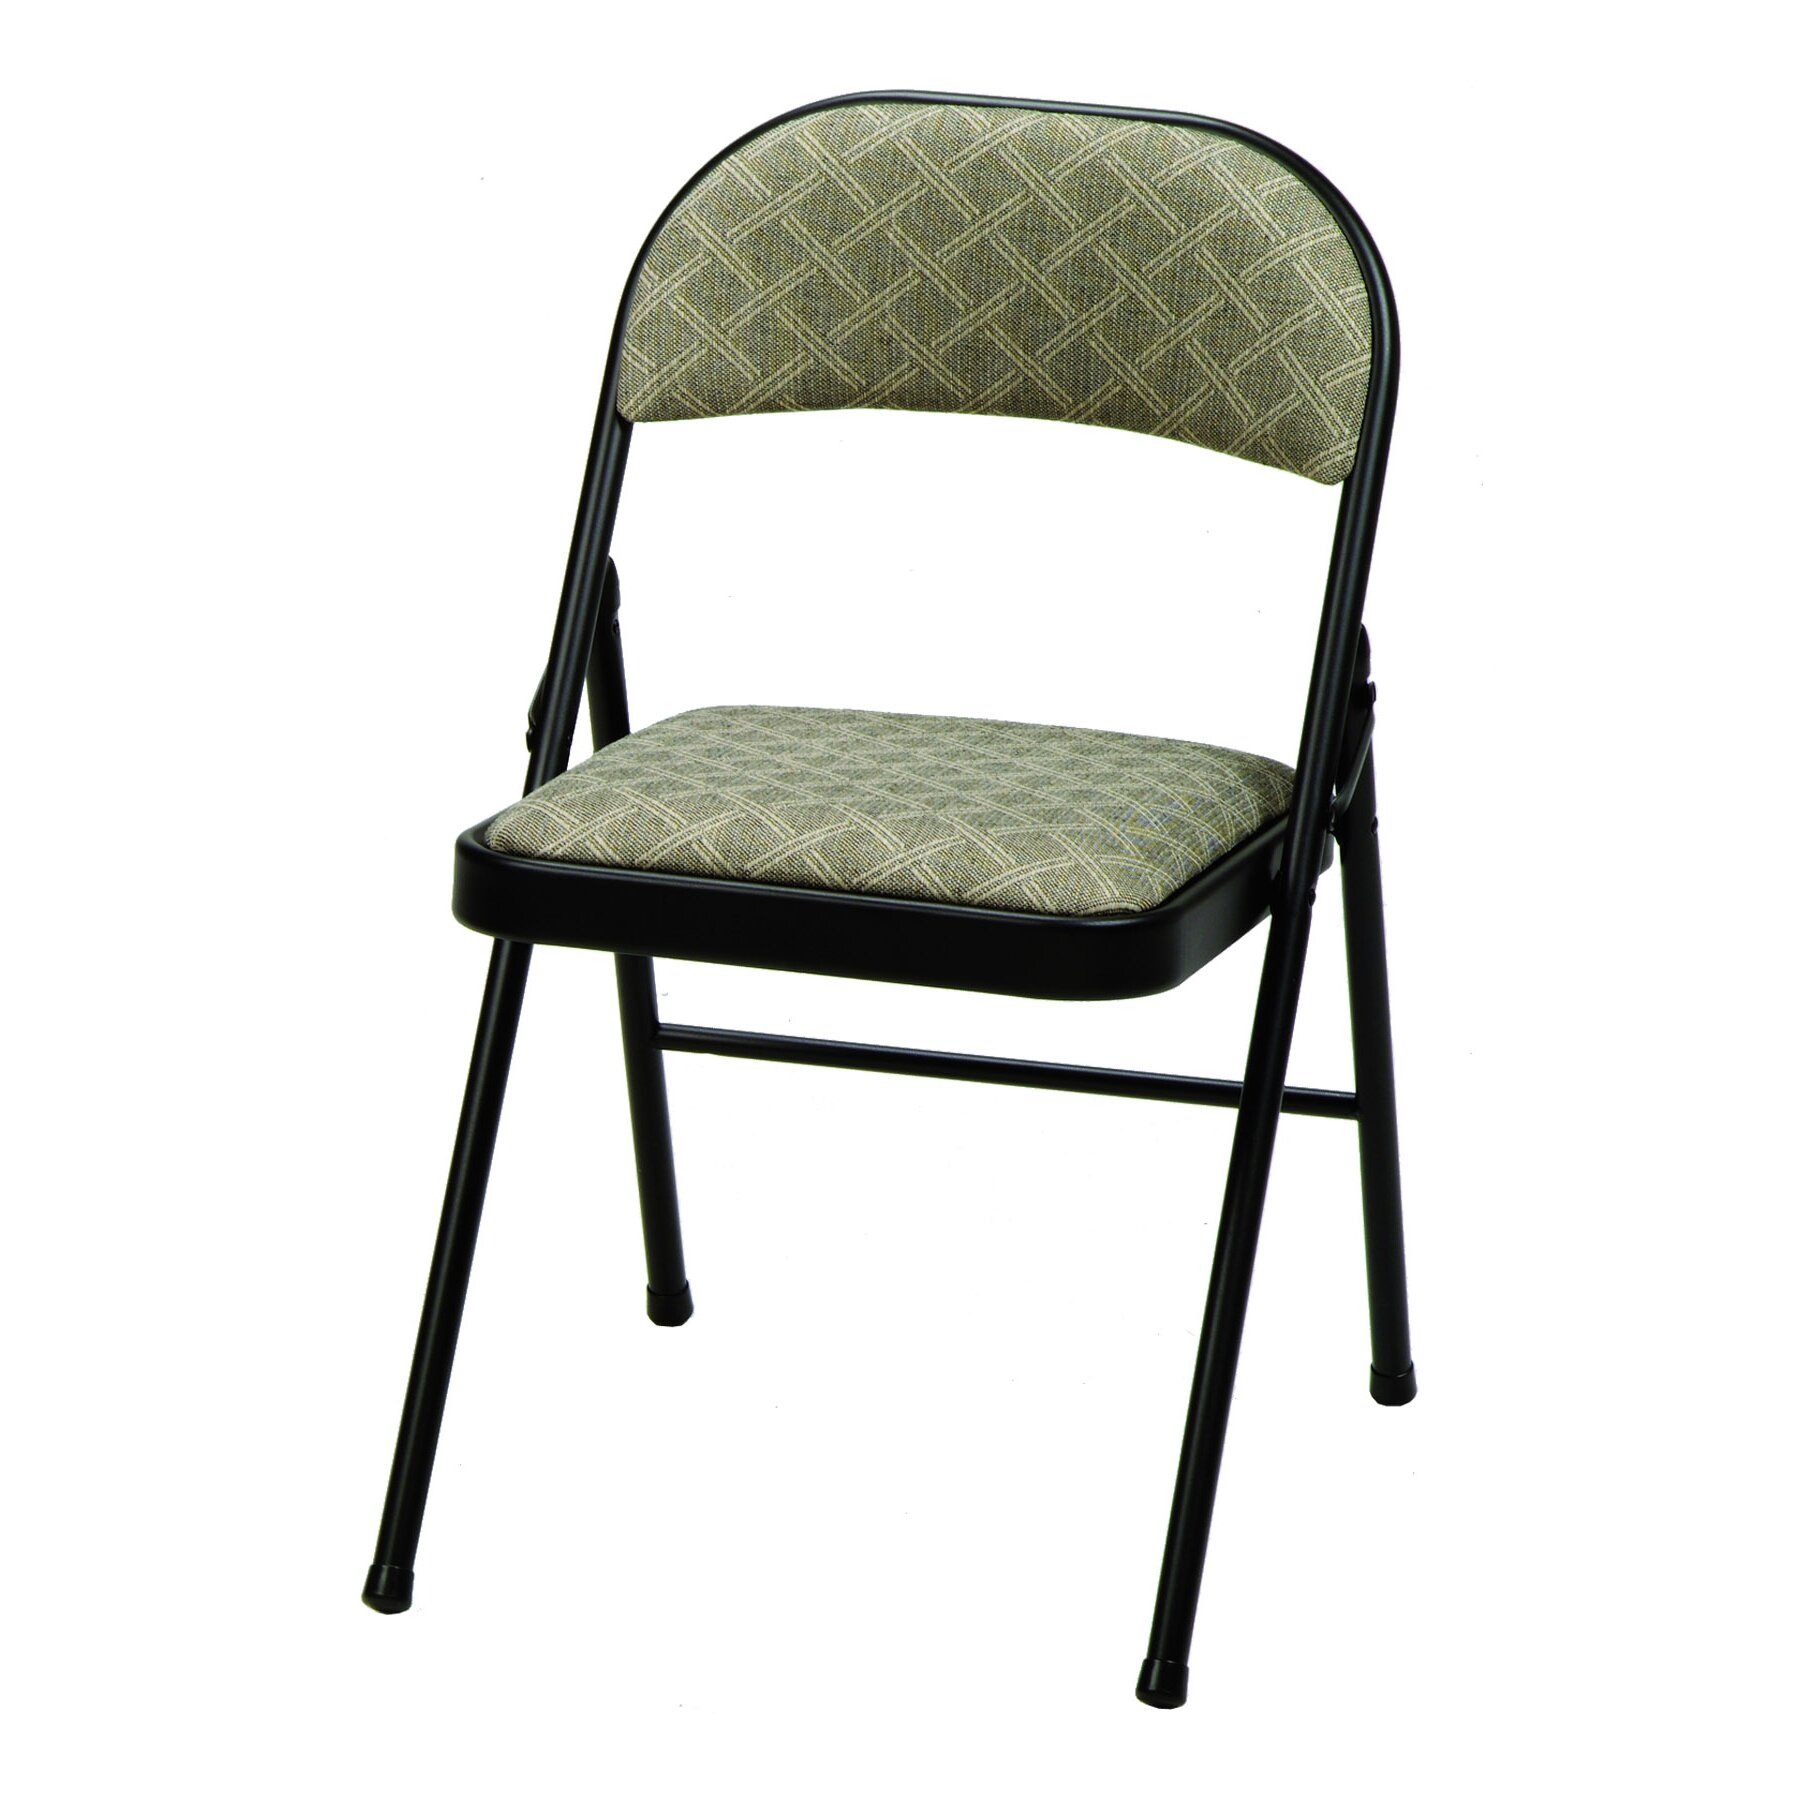 Meco Deluxe Fabric Padded Folding Chair & Reviews